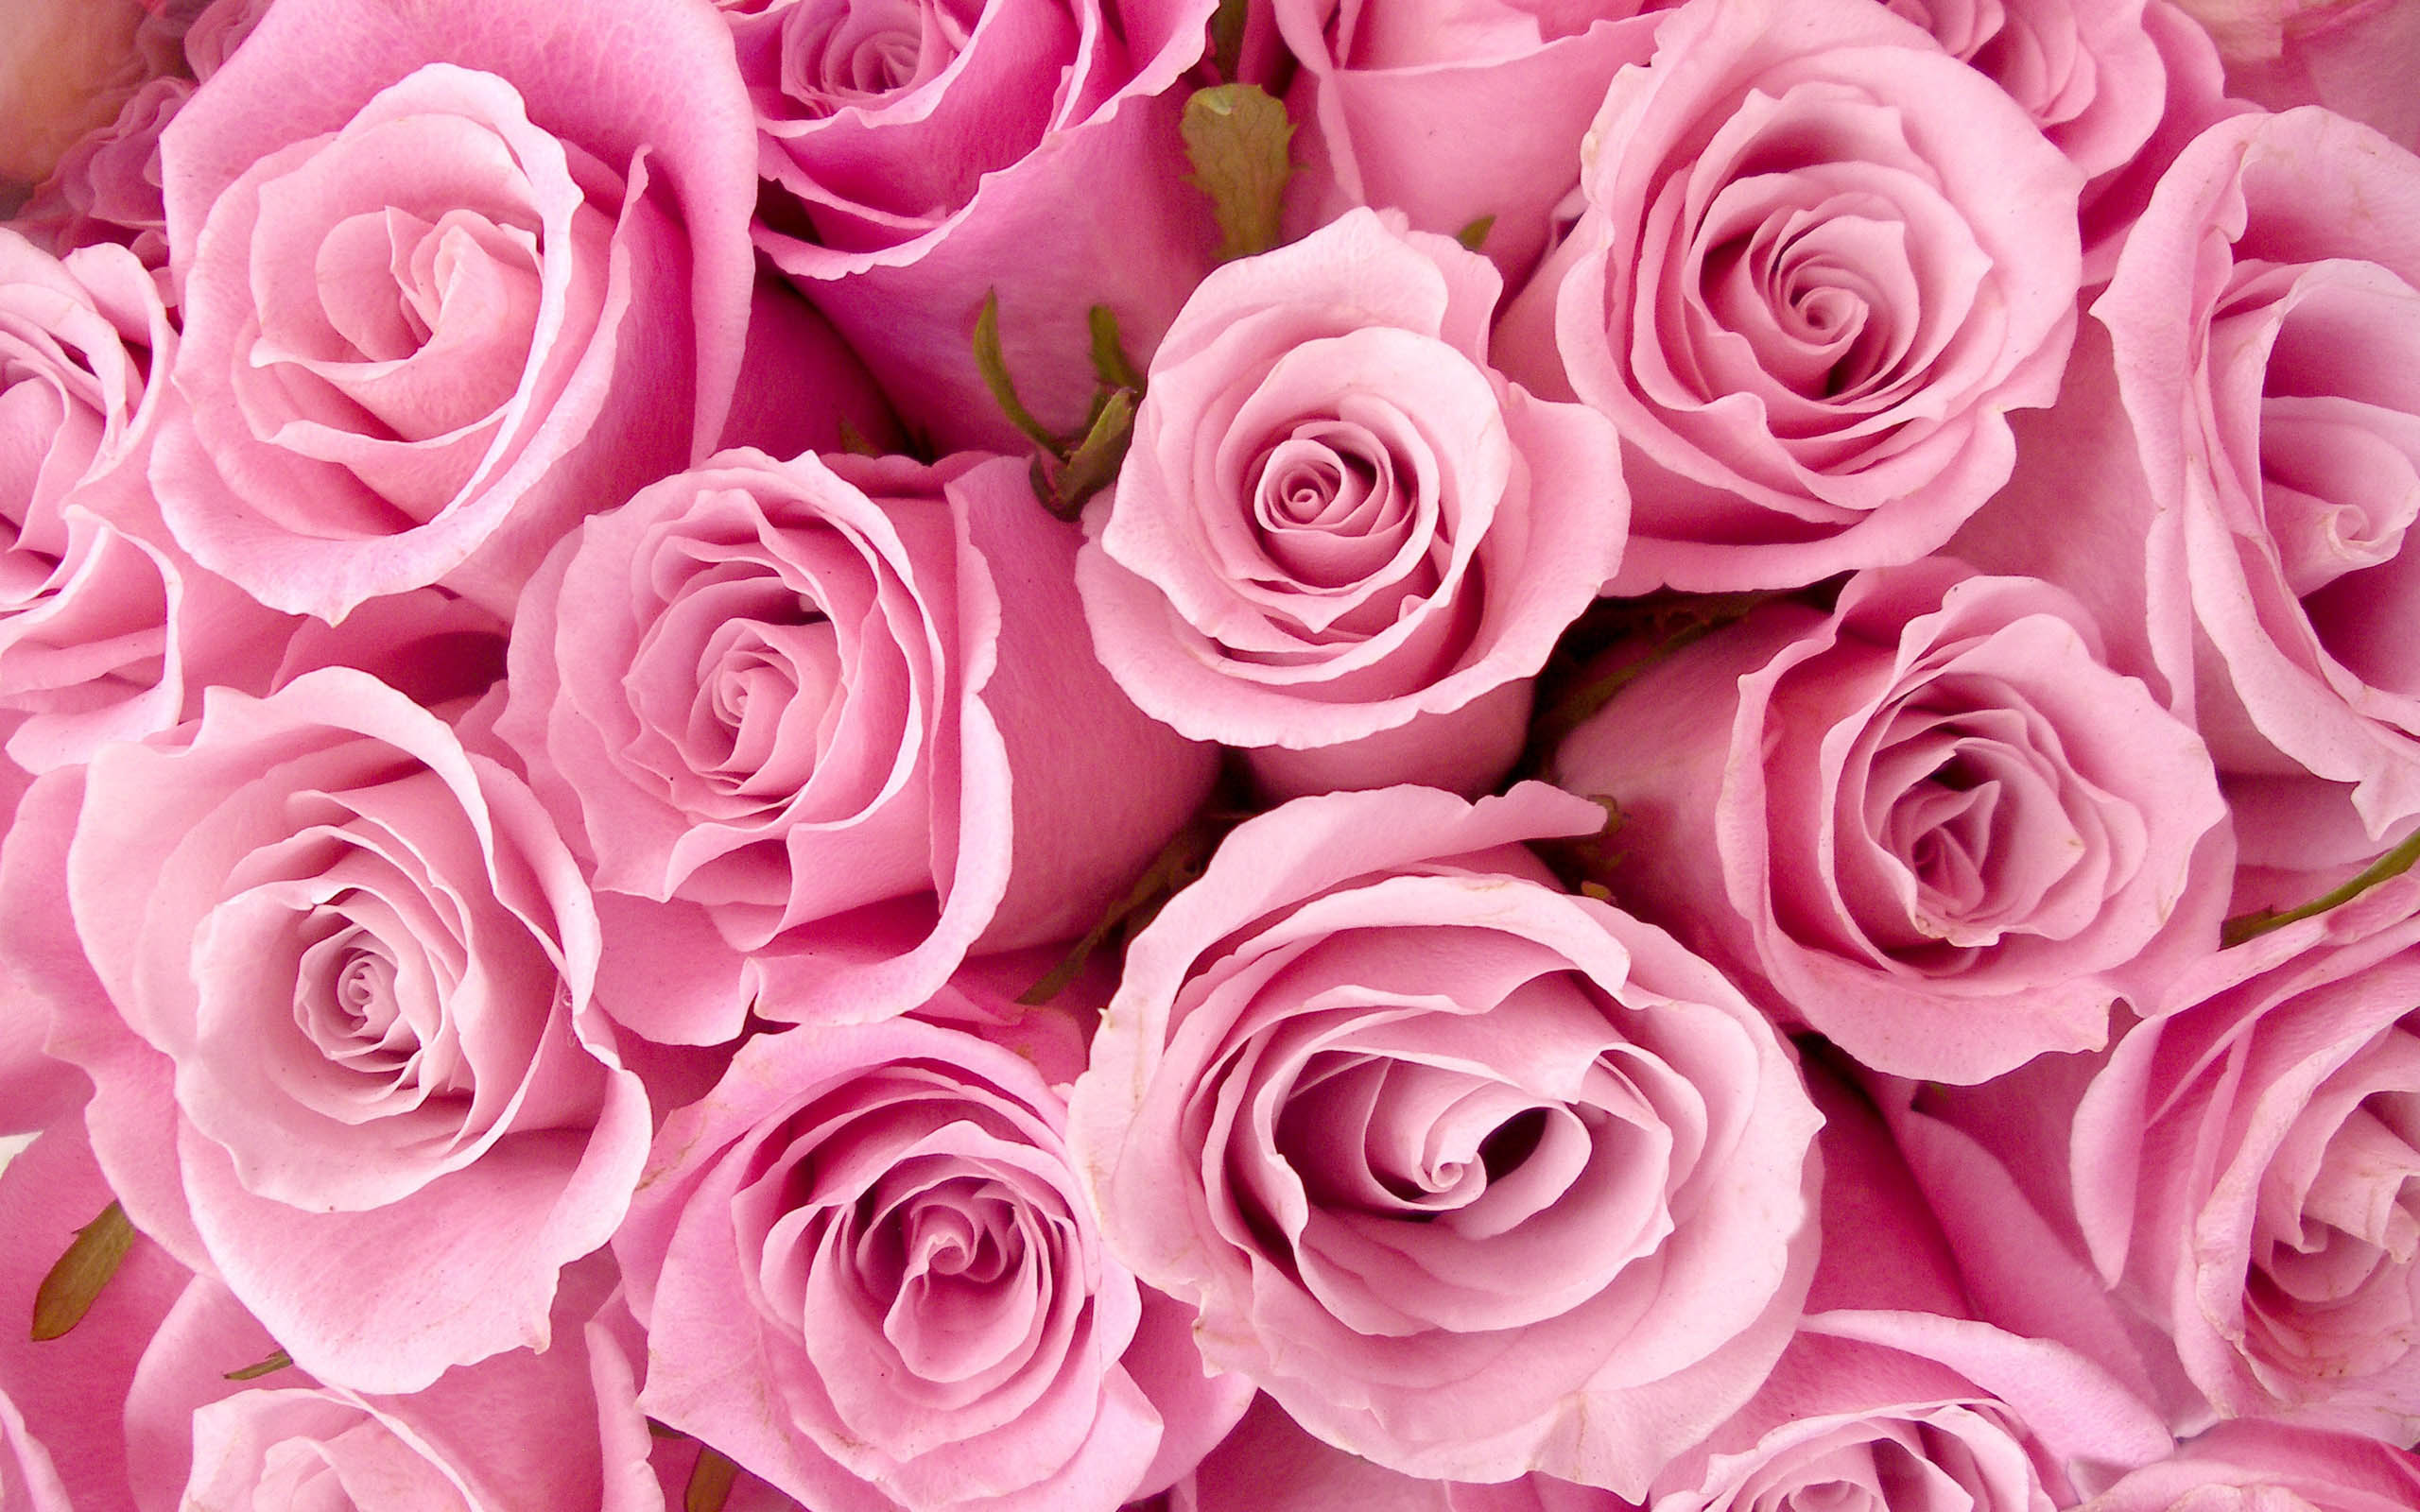 Pink roses wallpaper photos   Pink Wallpaper Designs 2560x1600